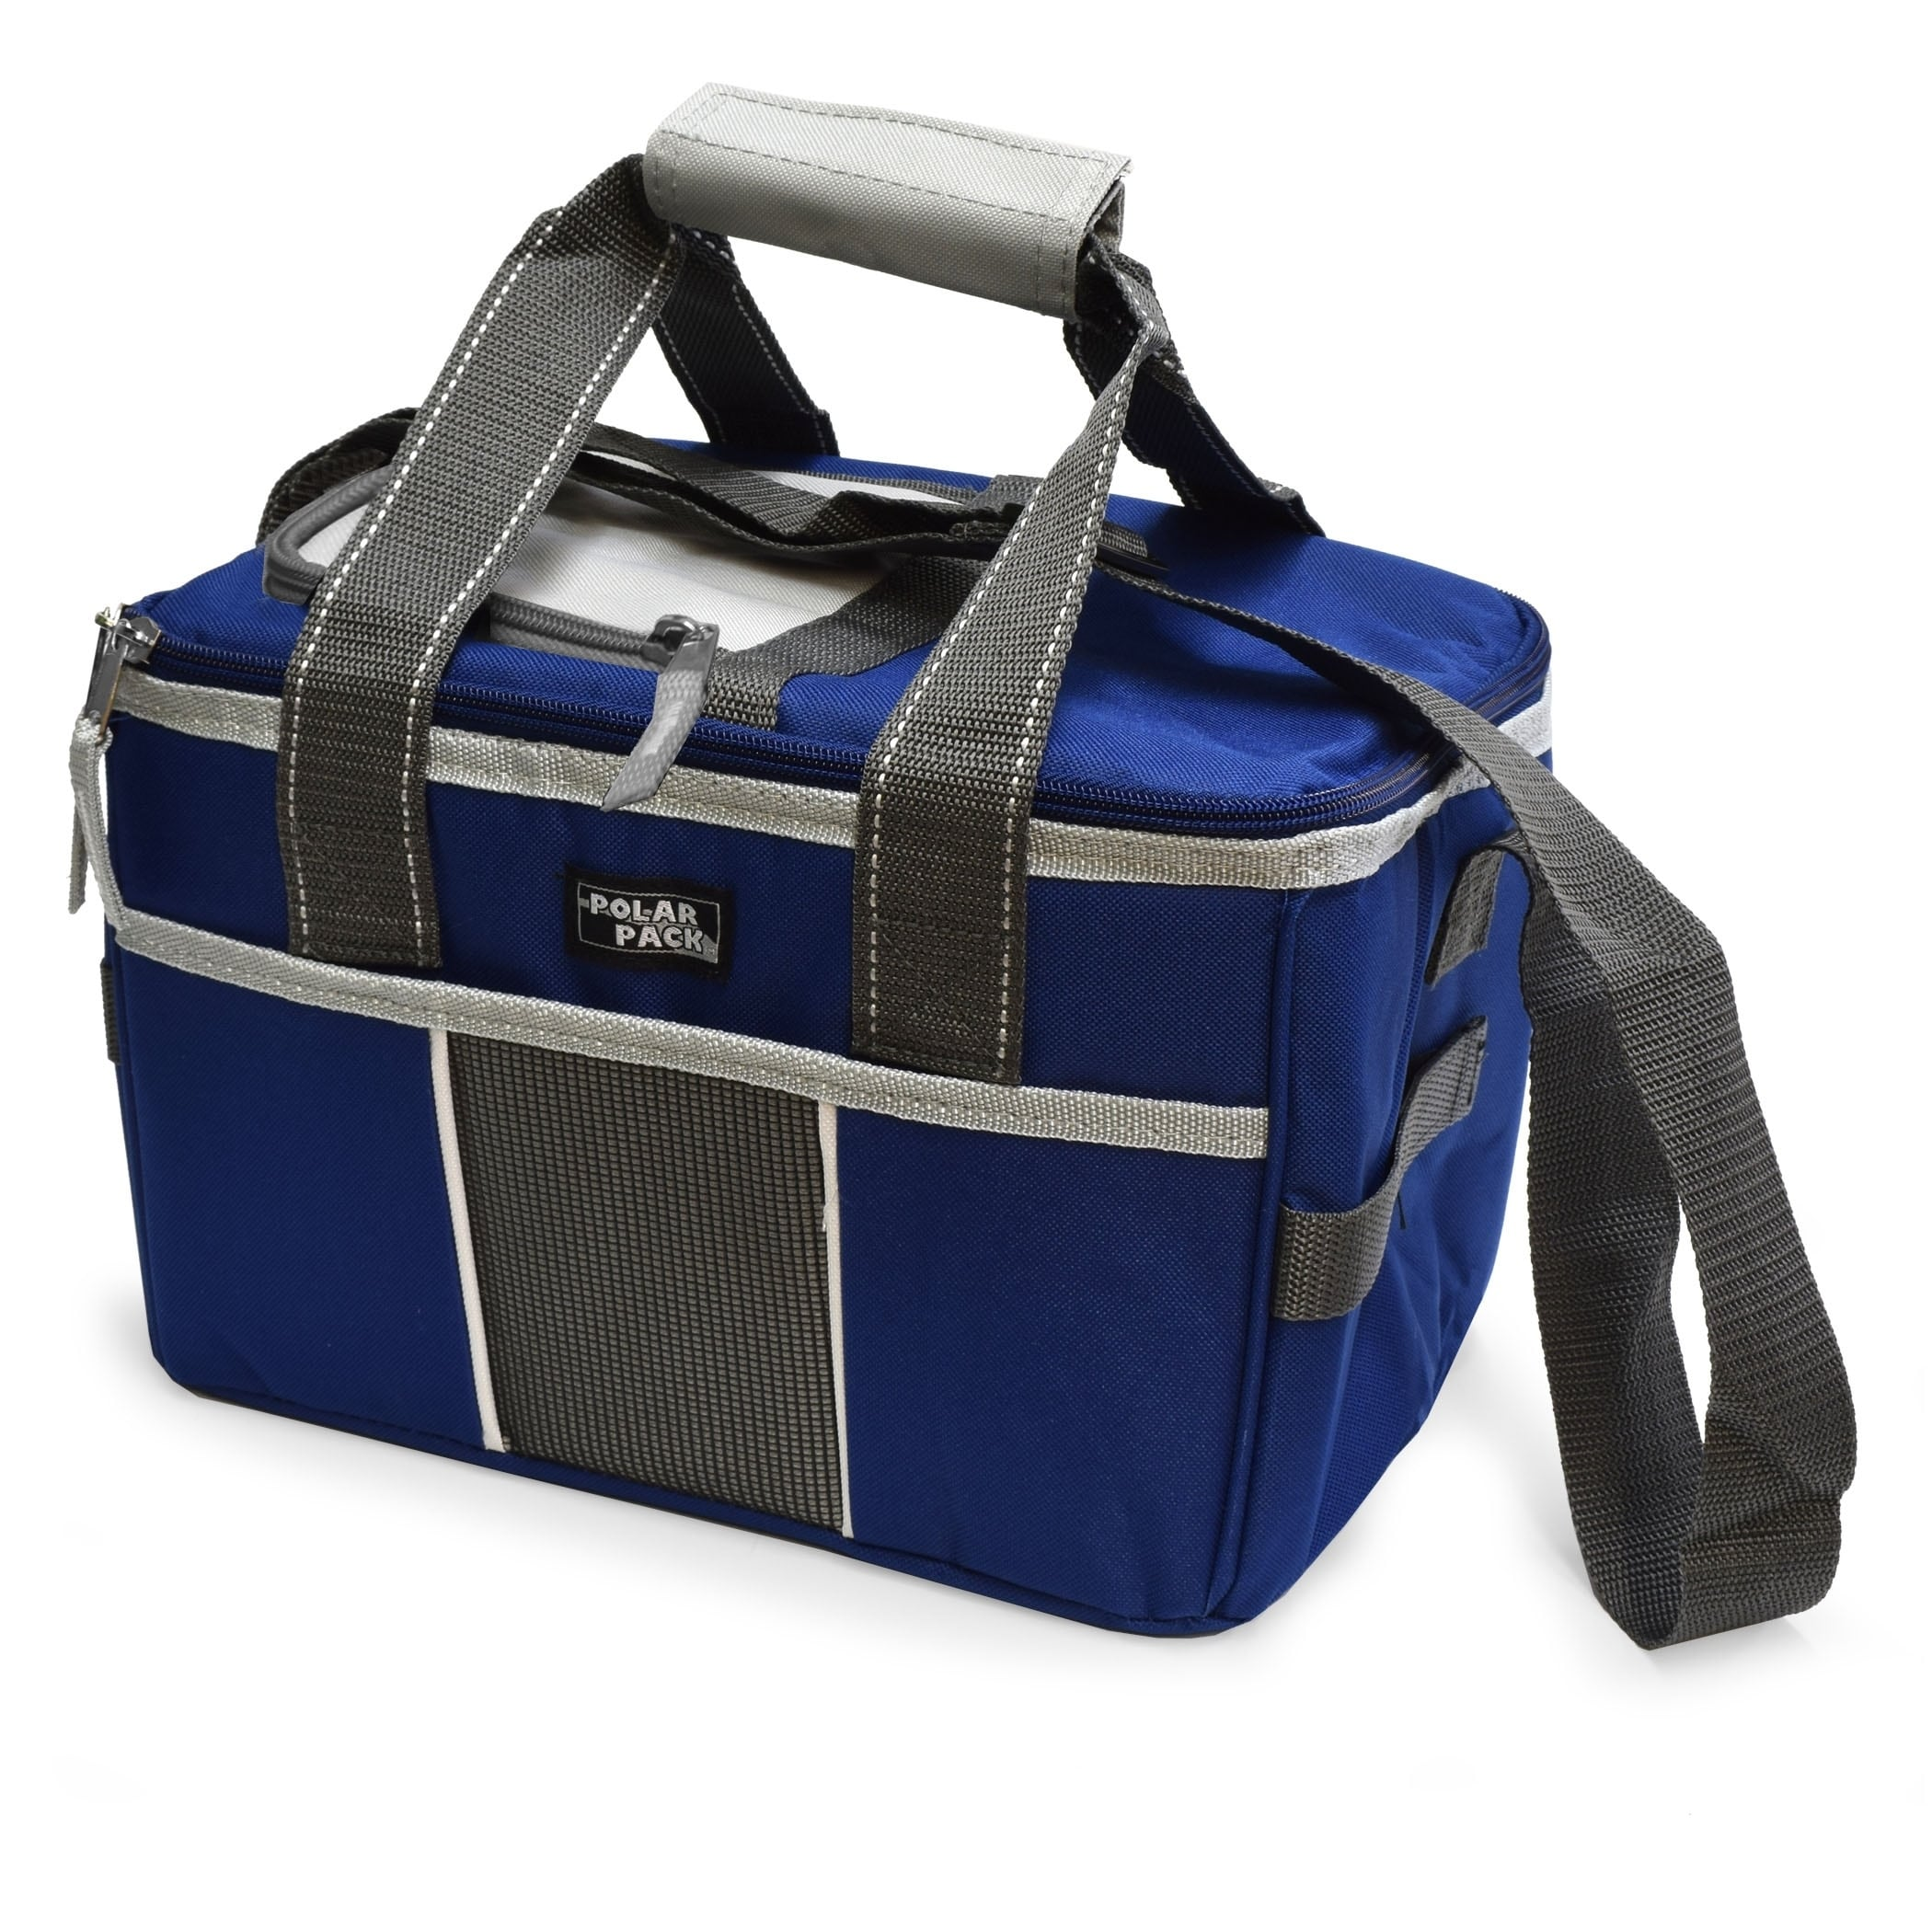 Polar Pack 18 Can Insulated Square